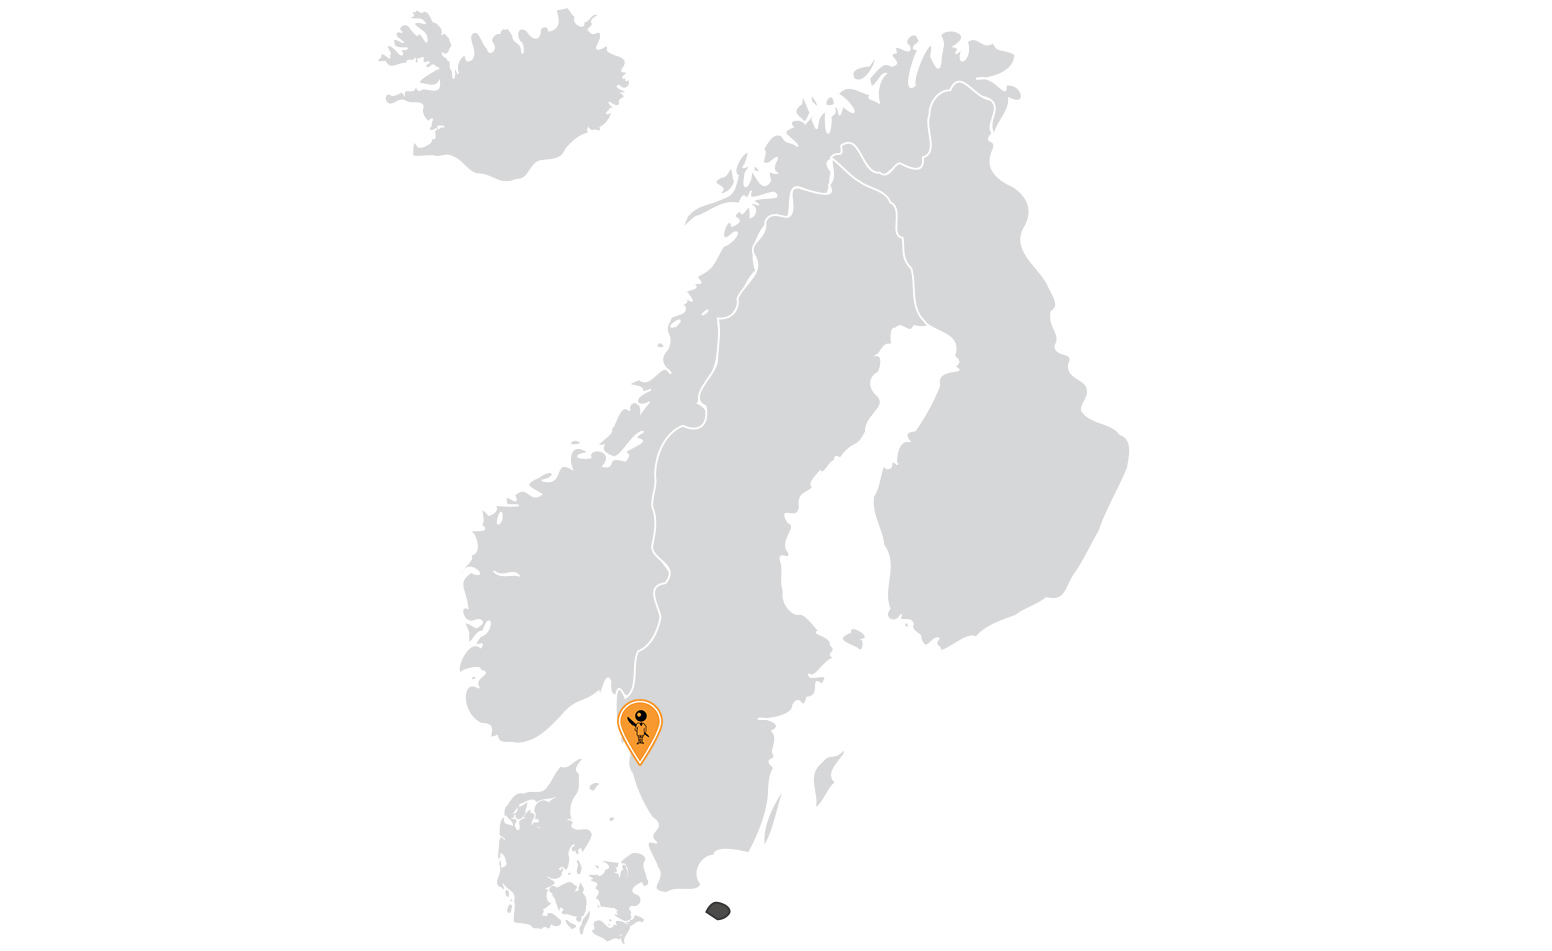 Map of BIC's presence in Nordics